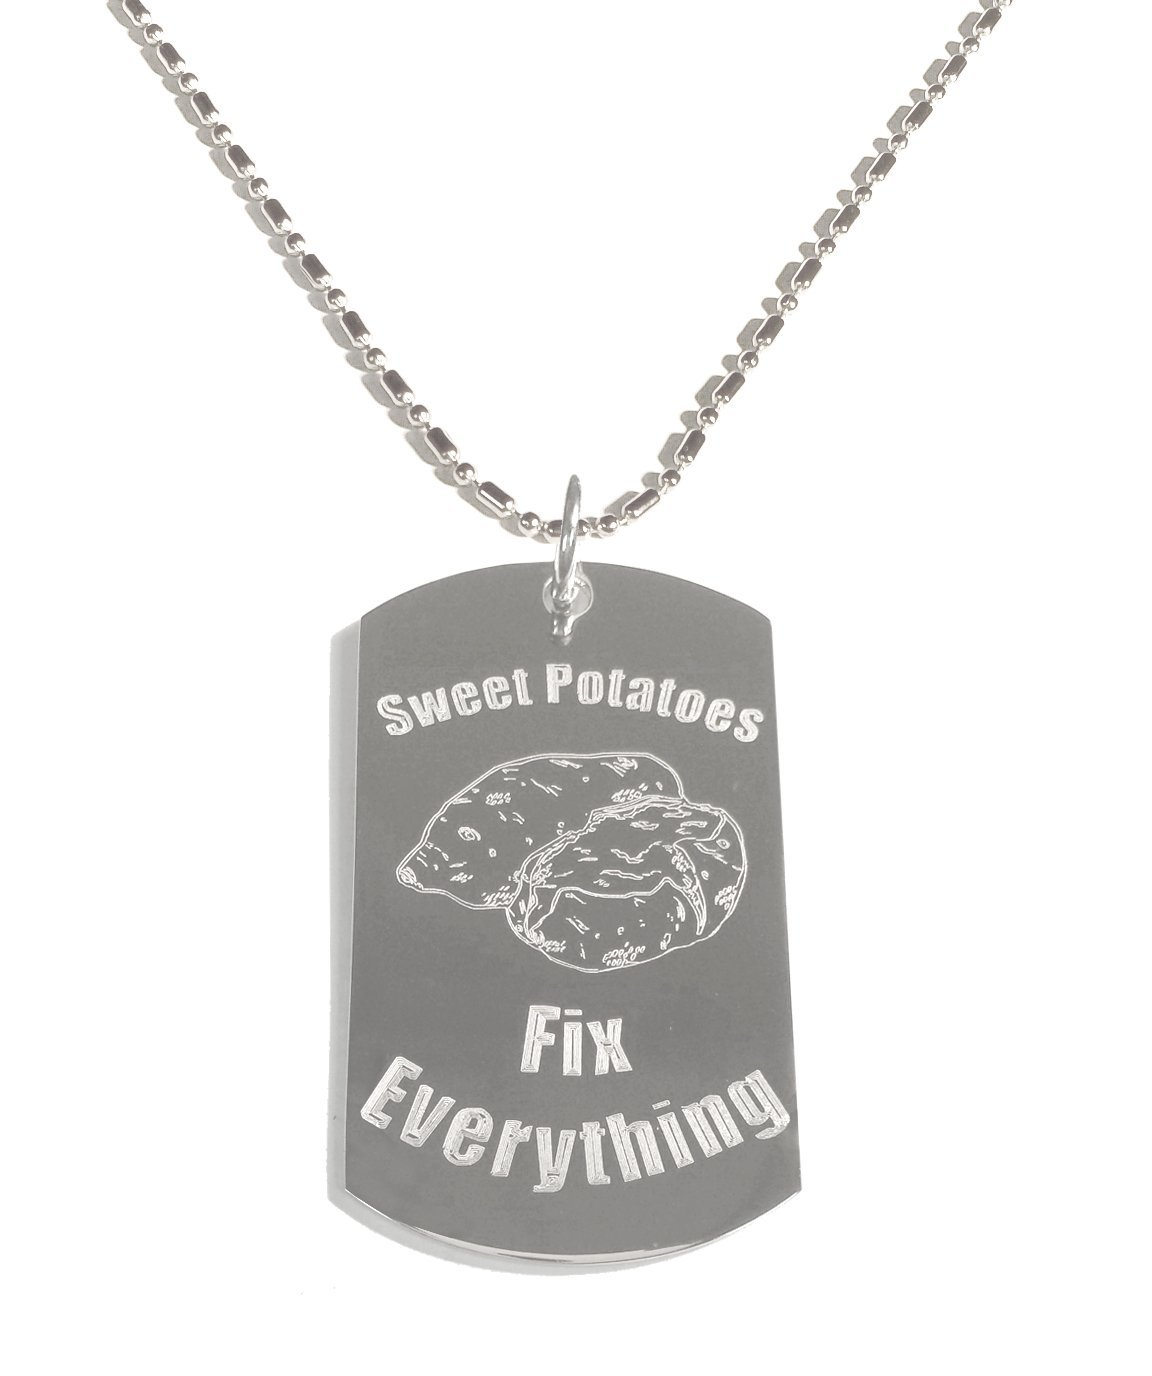 Hat Shark Sweet Potatoes Fix Everything - Luggage Metal Chain Necklace Military Dog Tag